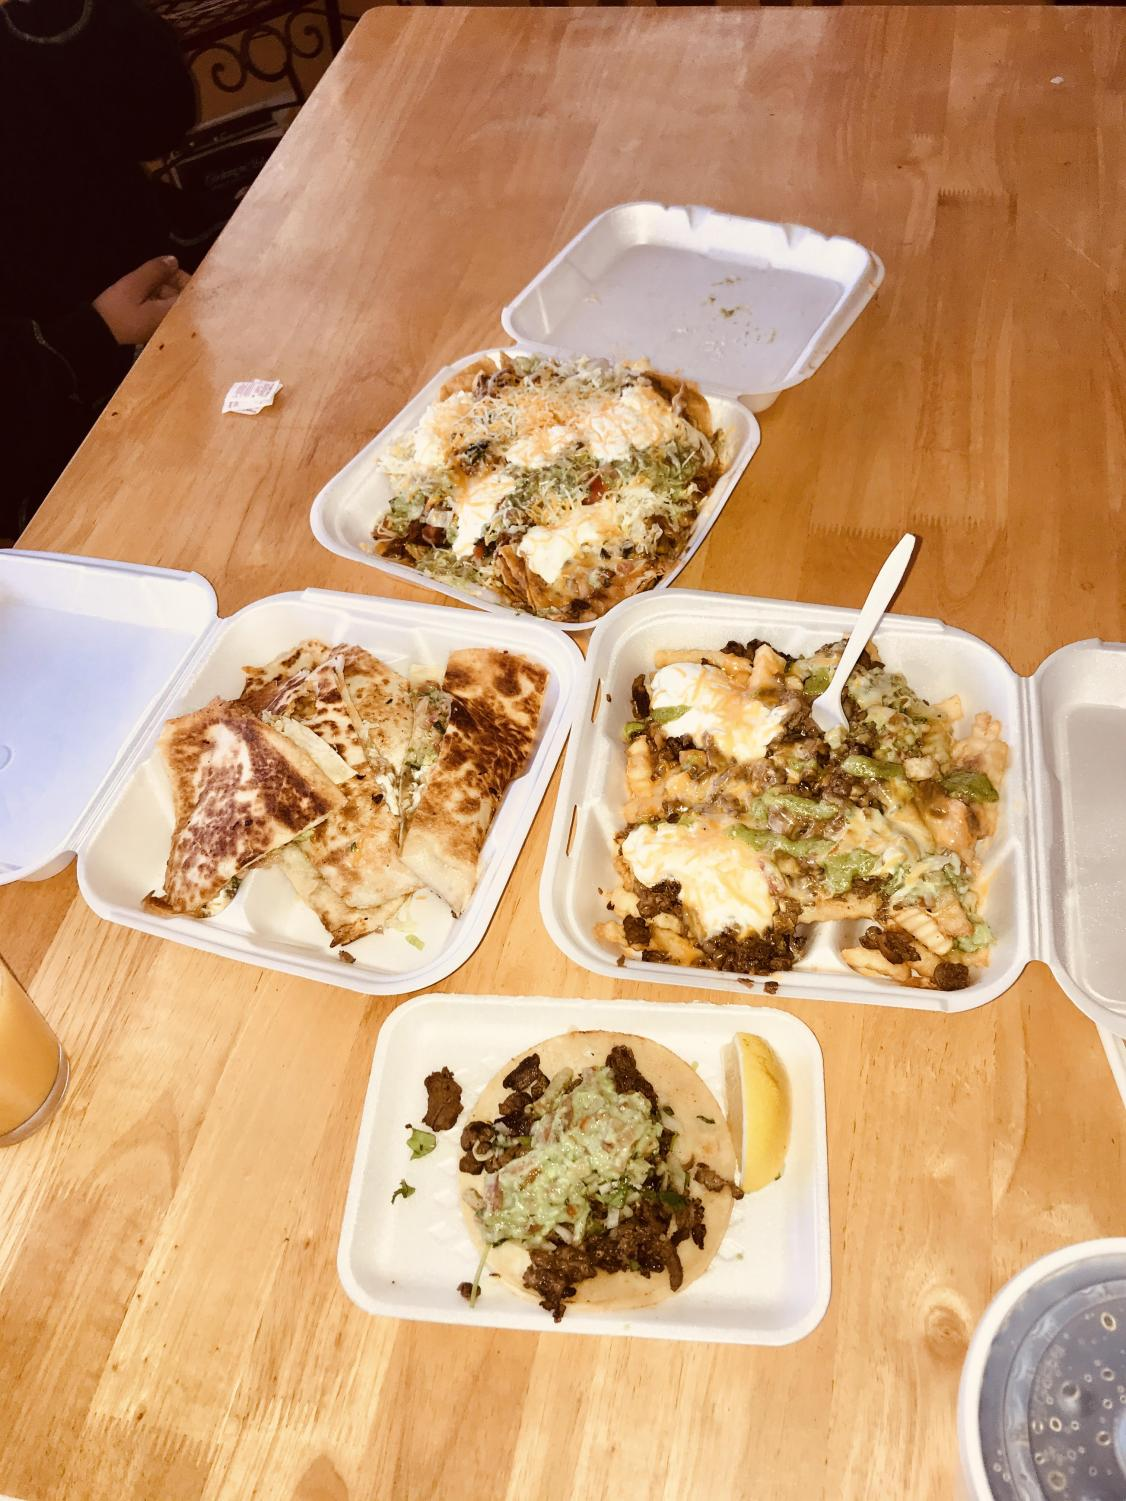 Tacos%2C+carne+asada+fries%2C+beef+nachos%2C+and+a+chicken+quesadilla+from+Cotija+Taco+Shop.